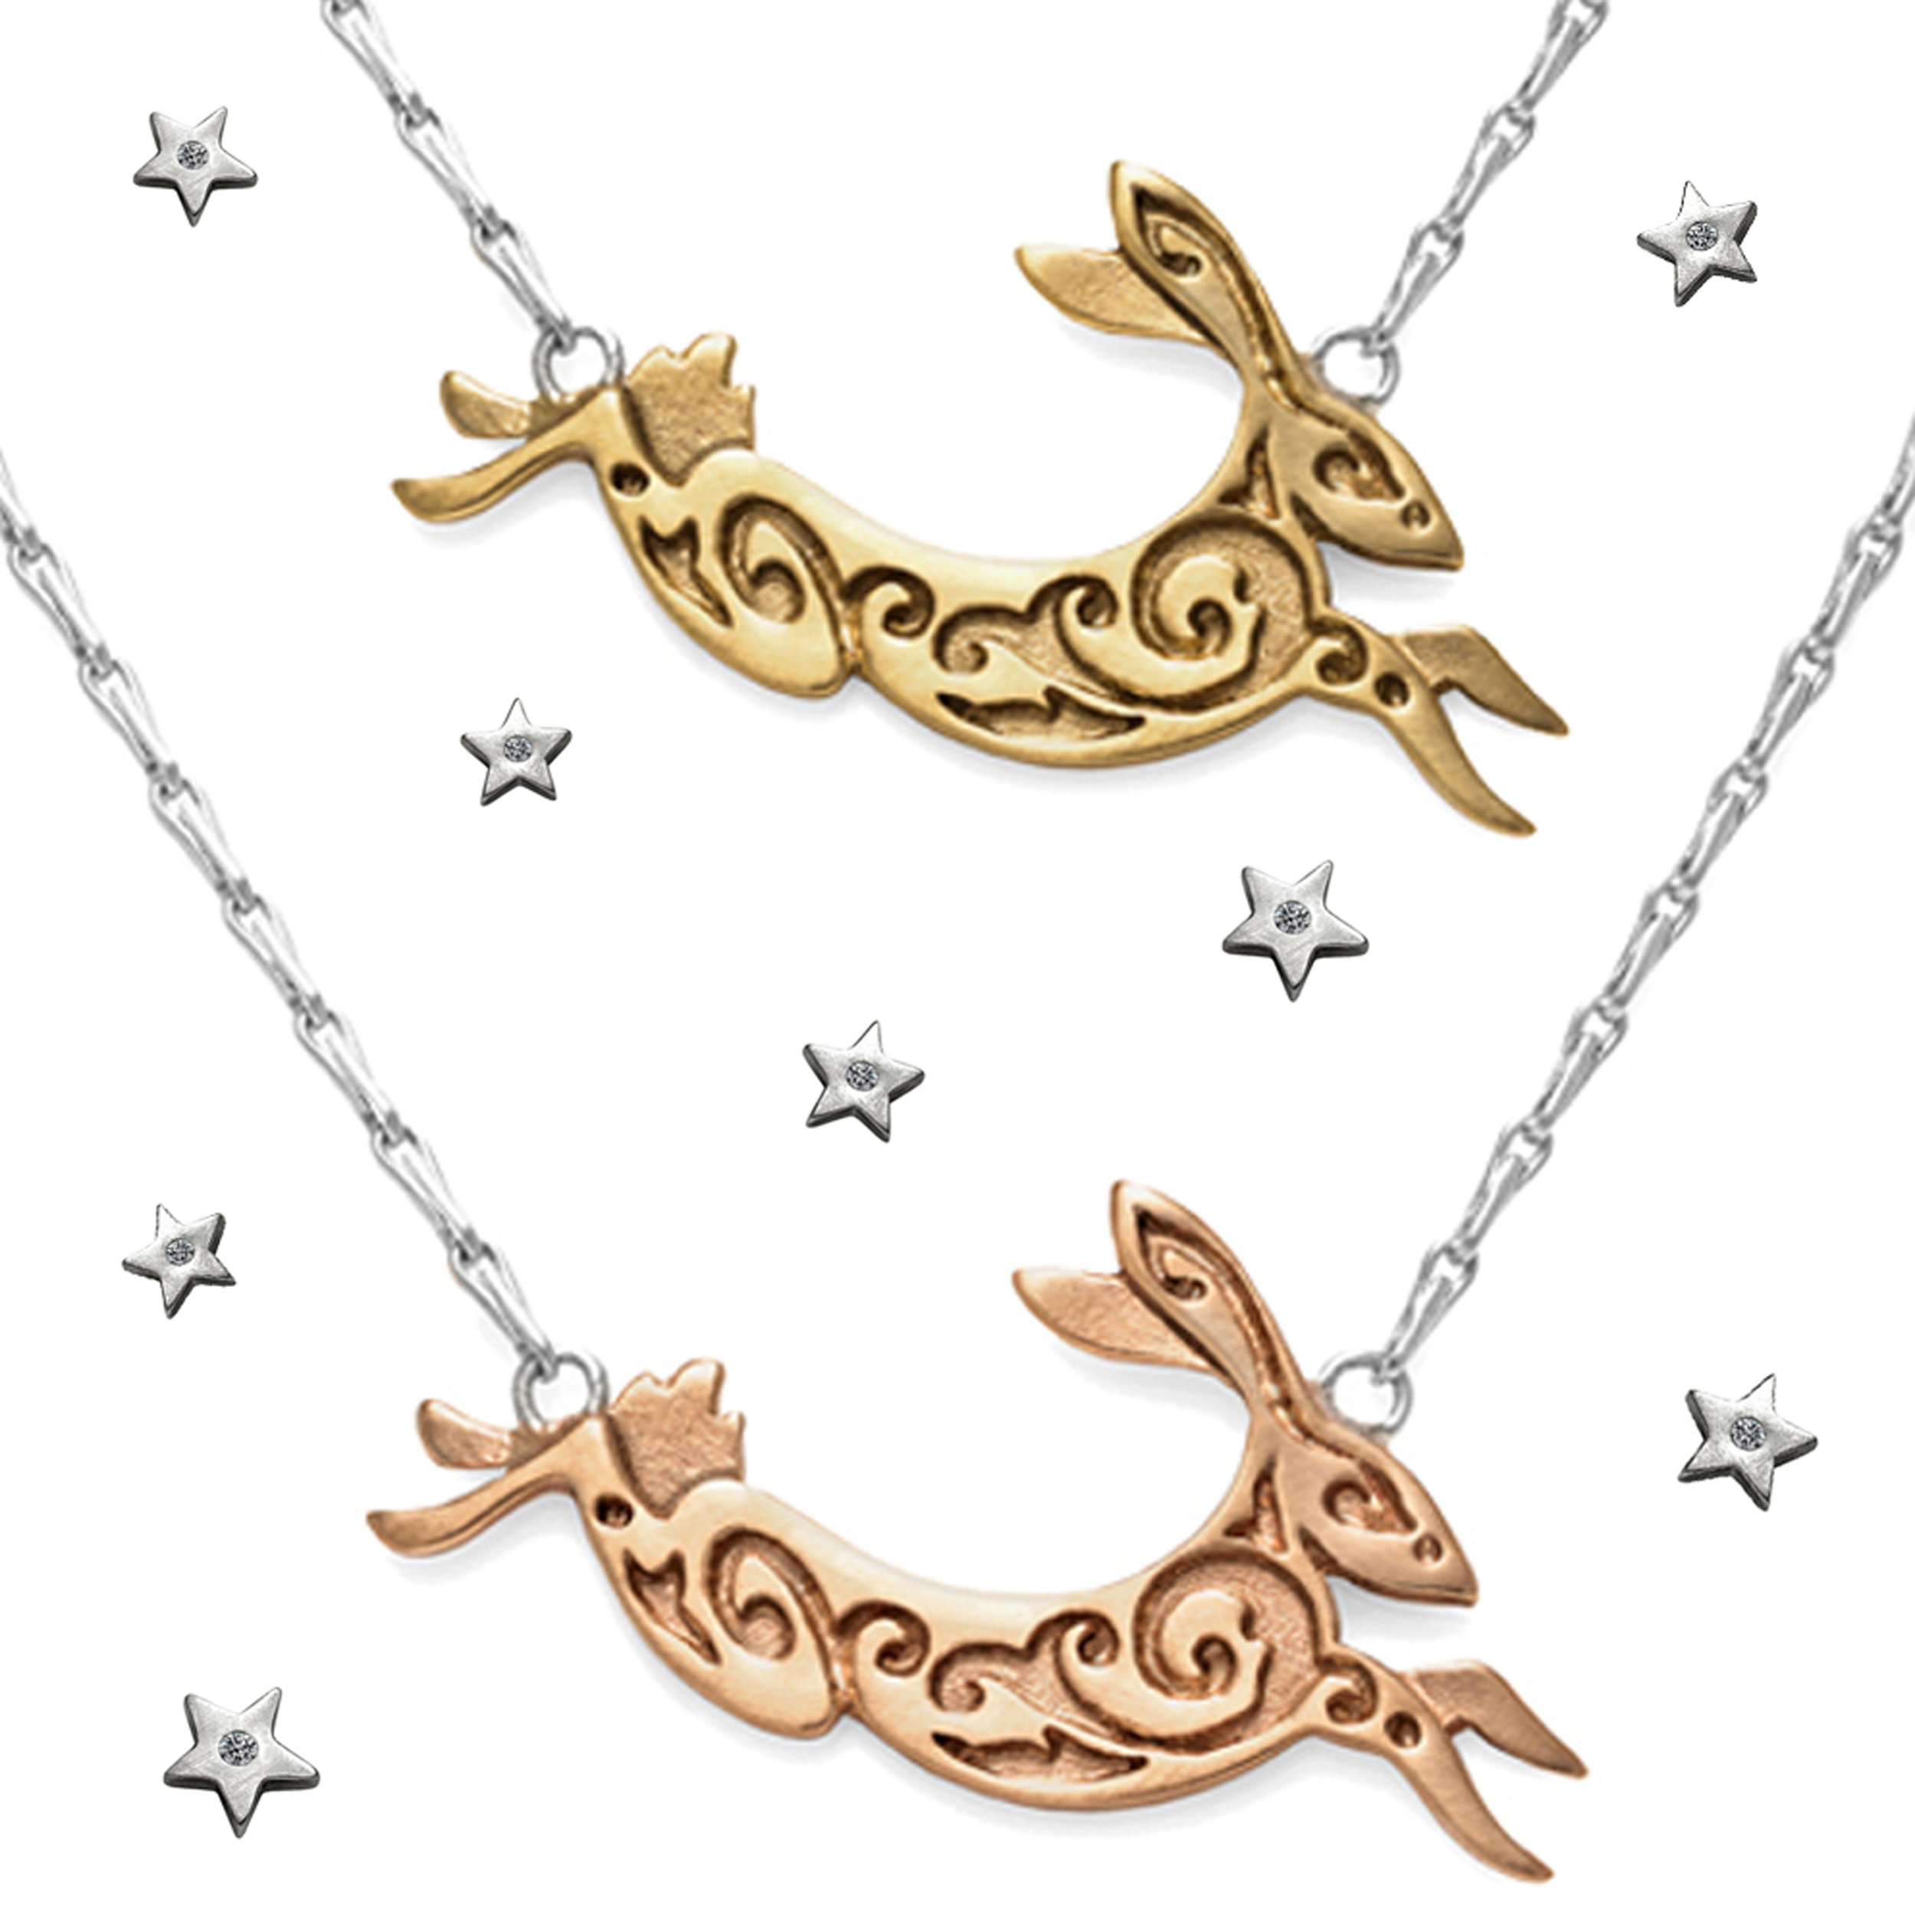 4. Small Hare Necklaces in recycled 9ct yellow and rose gold 300dpi